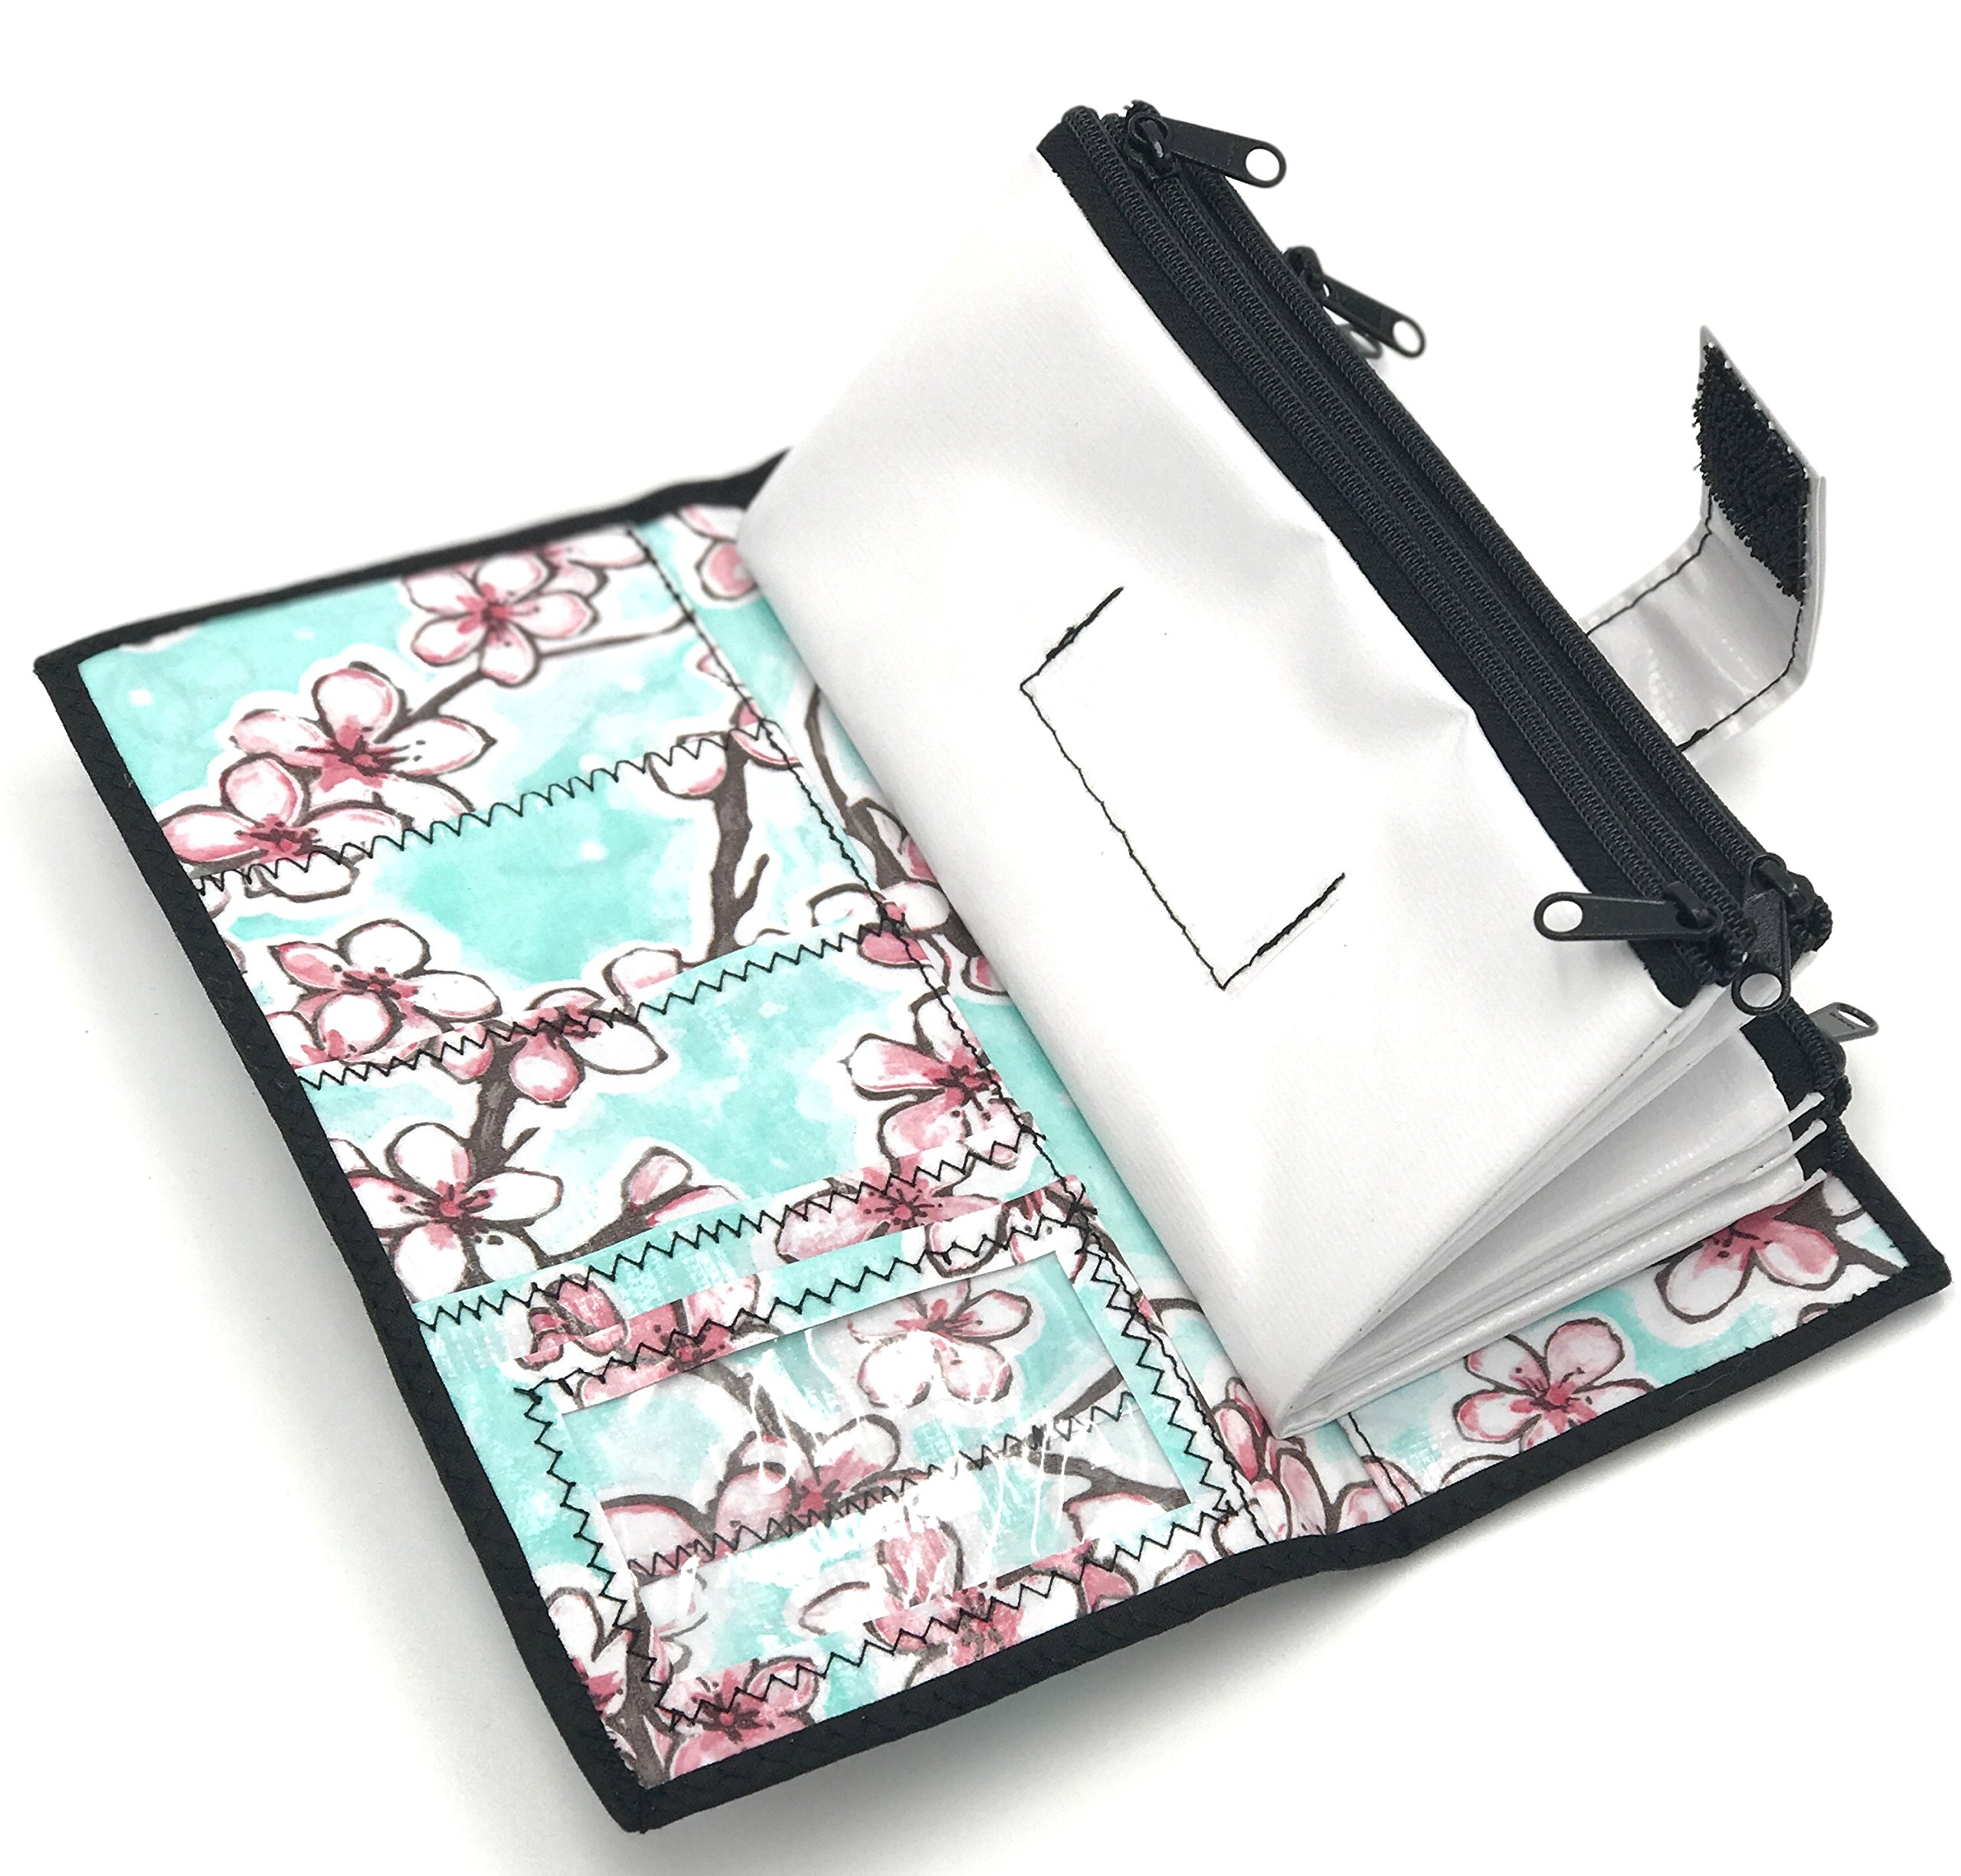 Cute White Floral Oilcloth Envelope System Wallet for Cash Budgeting and Extreme Couponing